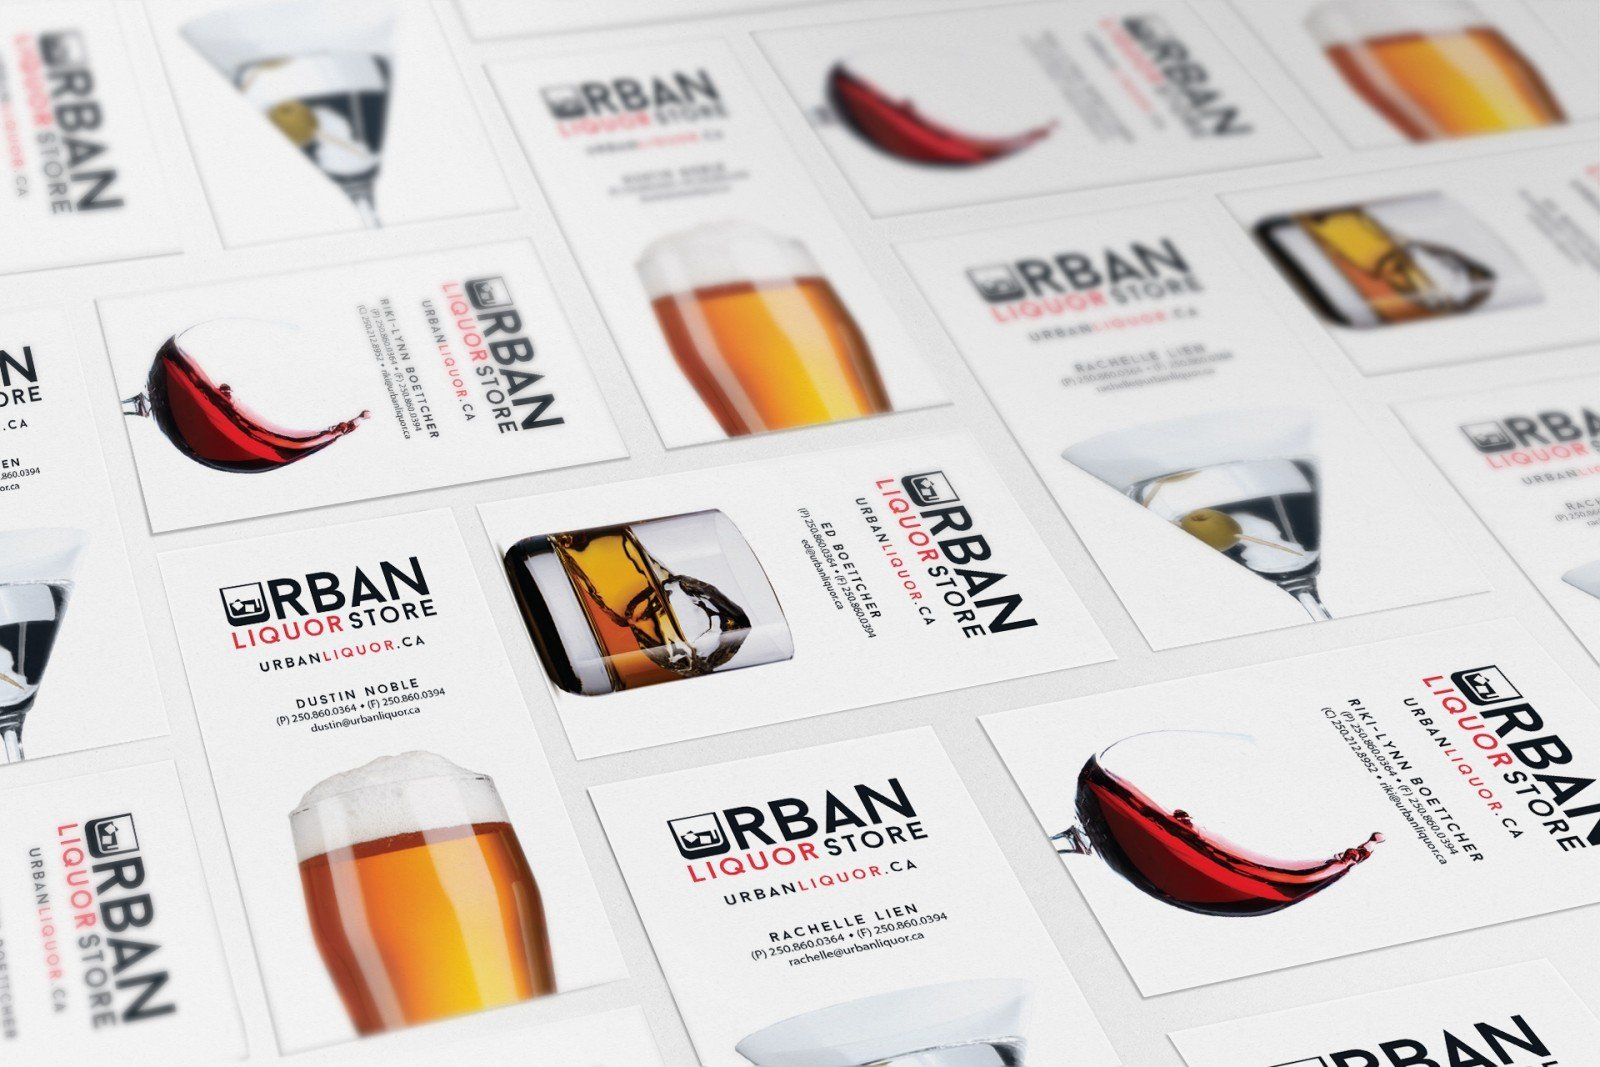 Business card liquor store images card design and card template excellent liquor store business cards pictures inspiration lovely liquor store business cards contemporary business card reheart colourmoves